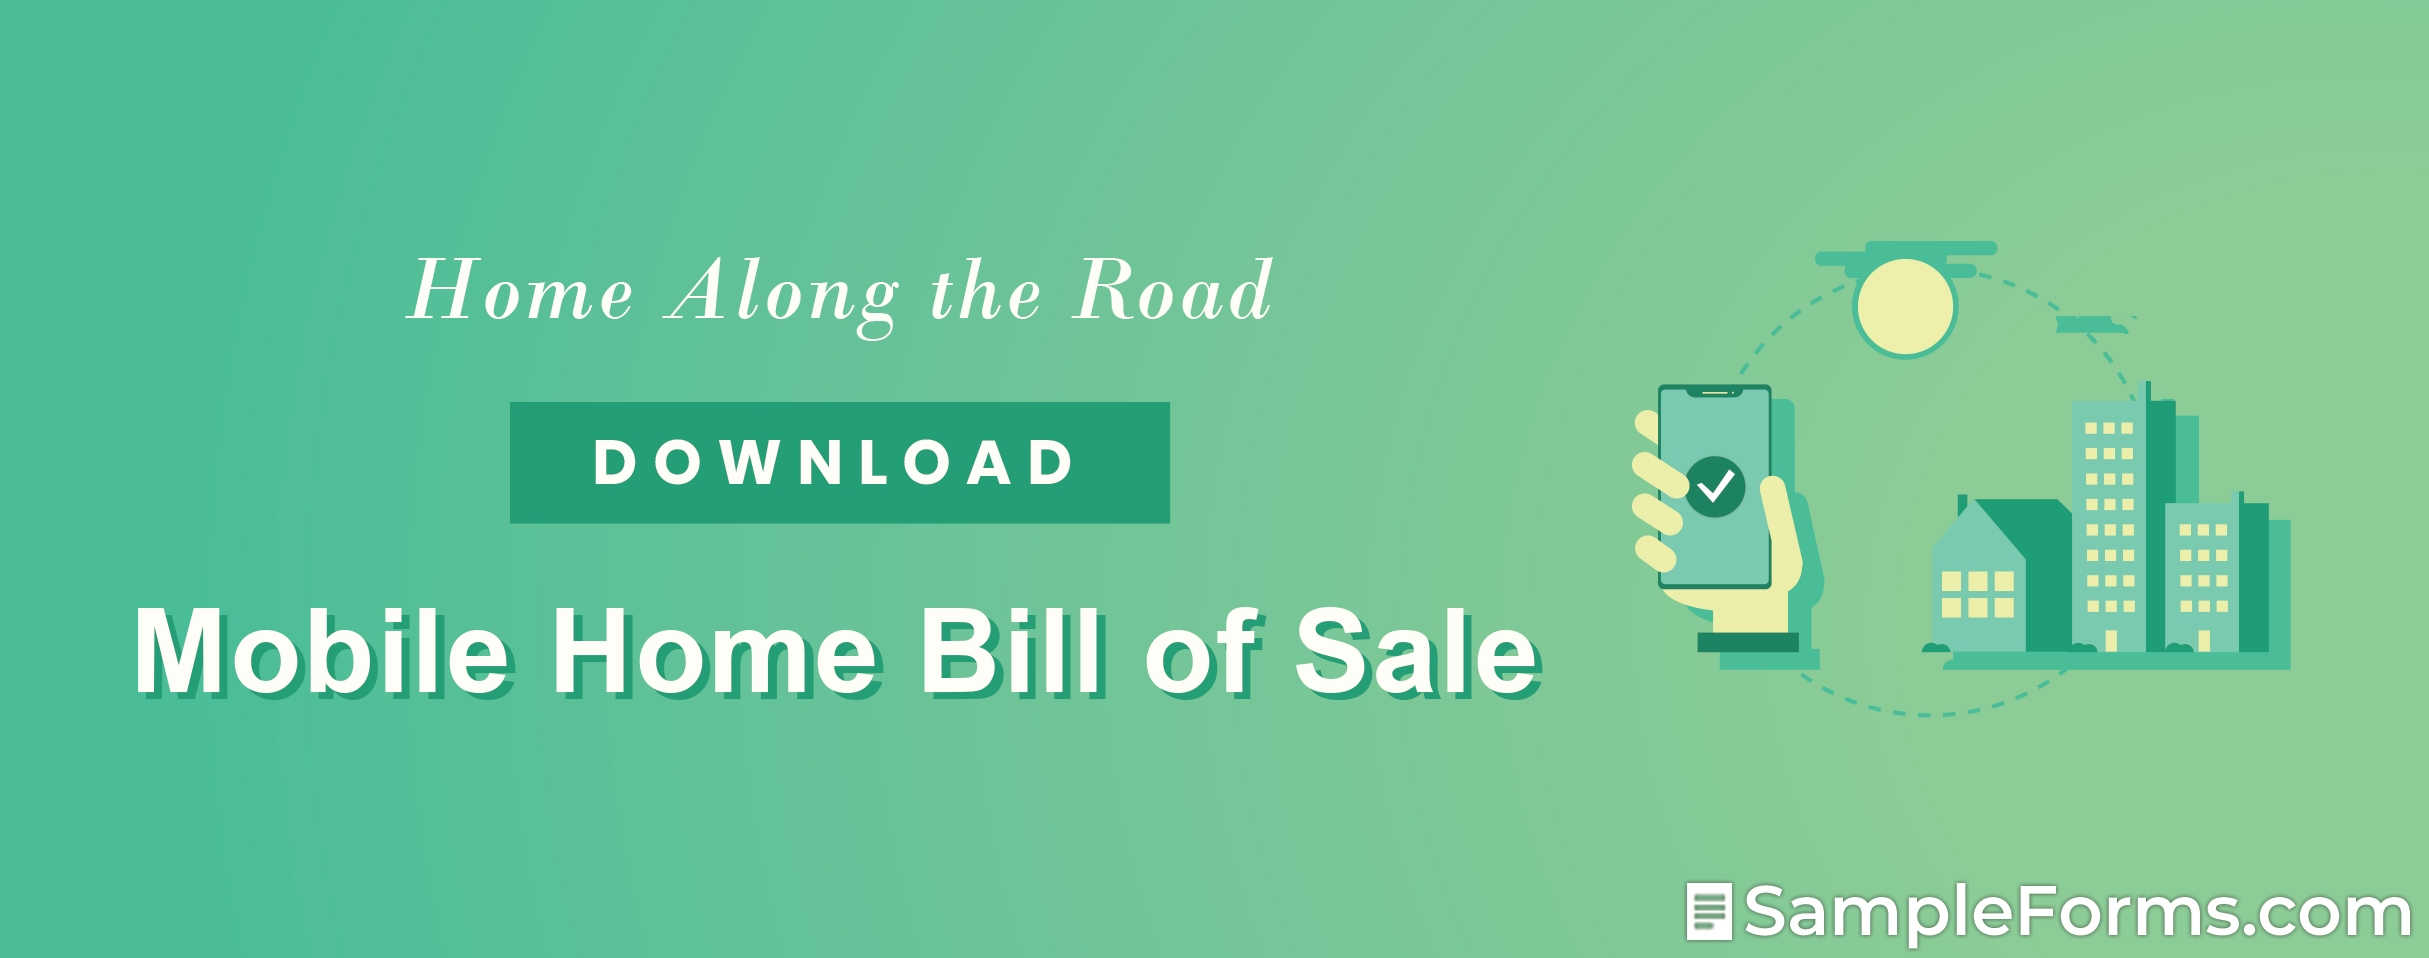 Mobile Home Bill of Sale Form3